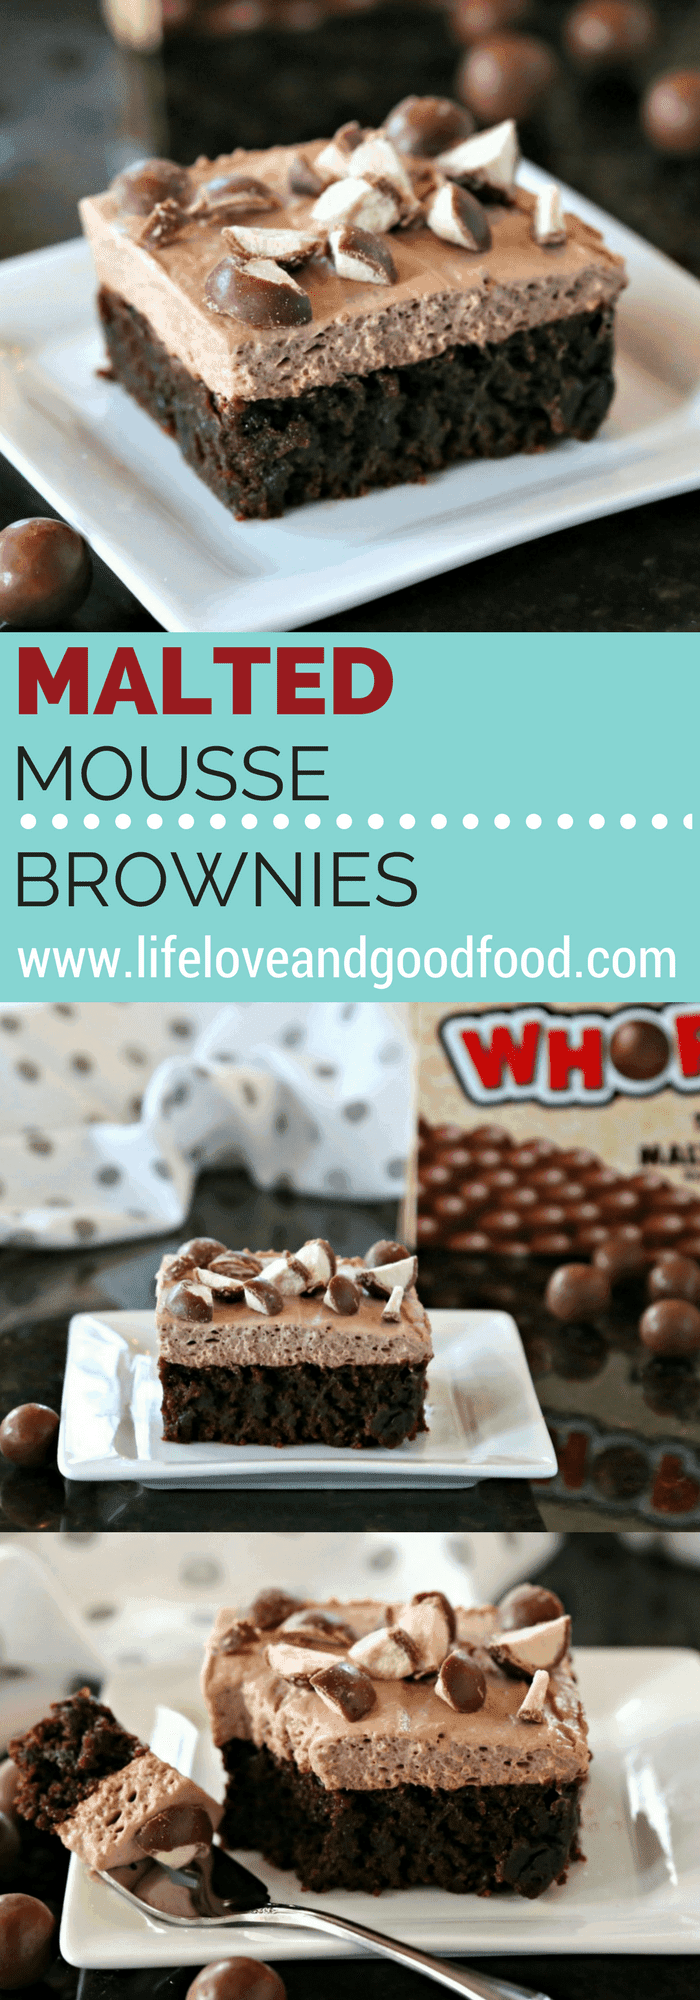 Malted chocolate isn't just for milkshakes! Malted Mousse Brownies have chocolate malt powder both in the brownie batter and in the creamy topping. #maltpowder #brownies #mousse